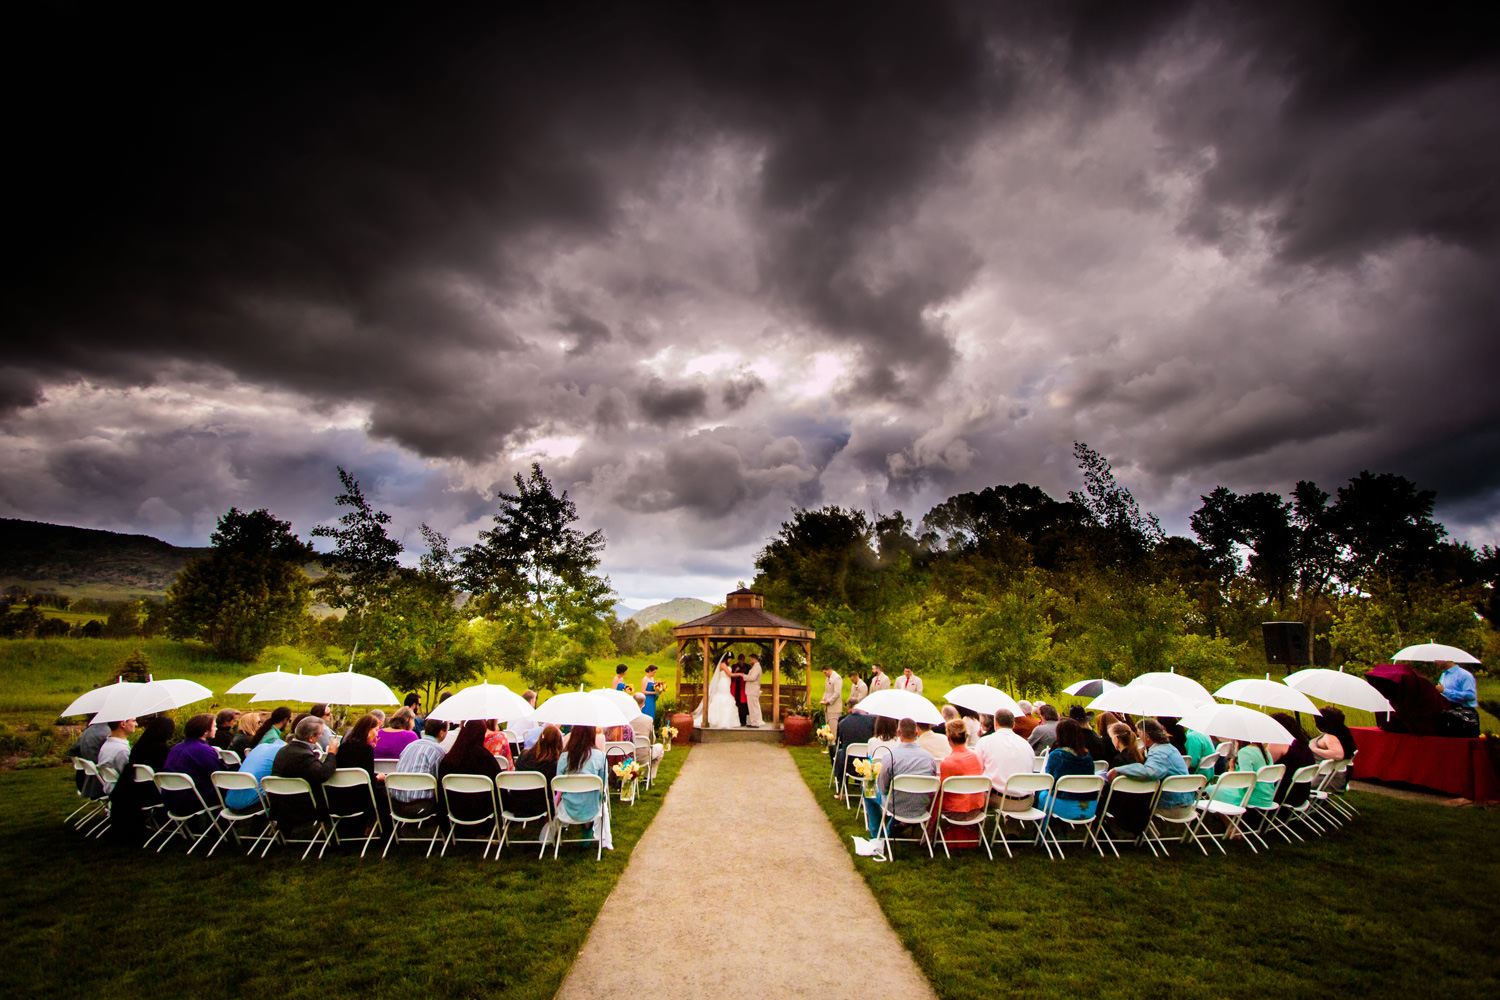 Stormy early Summer skies over a denver botanic gardens chatfield farms wedding in littleton, colorado